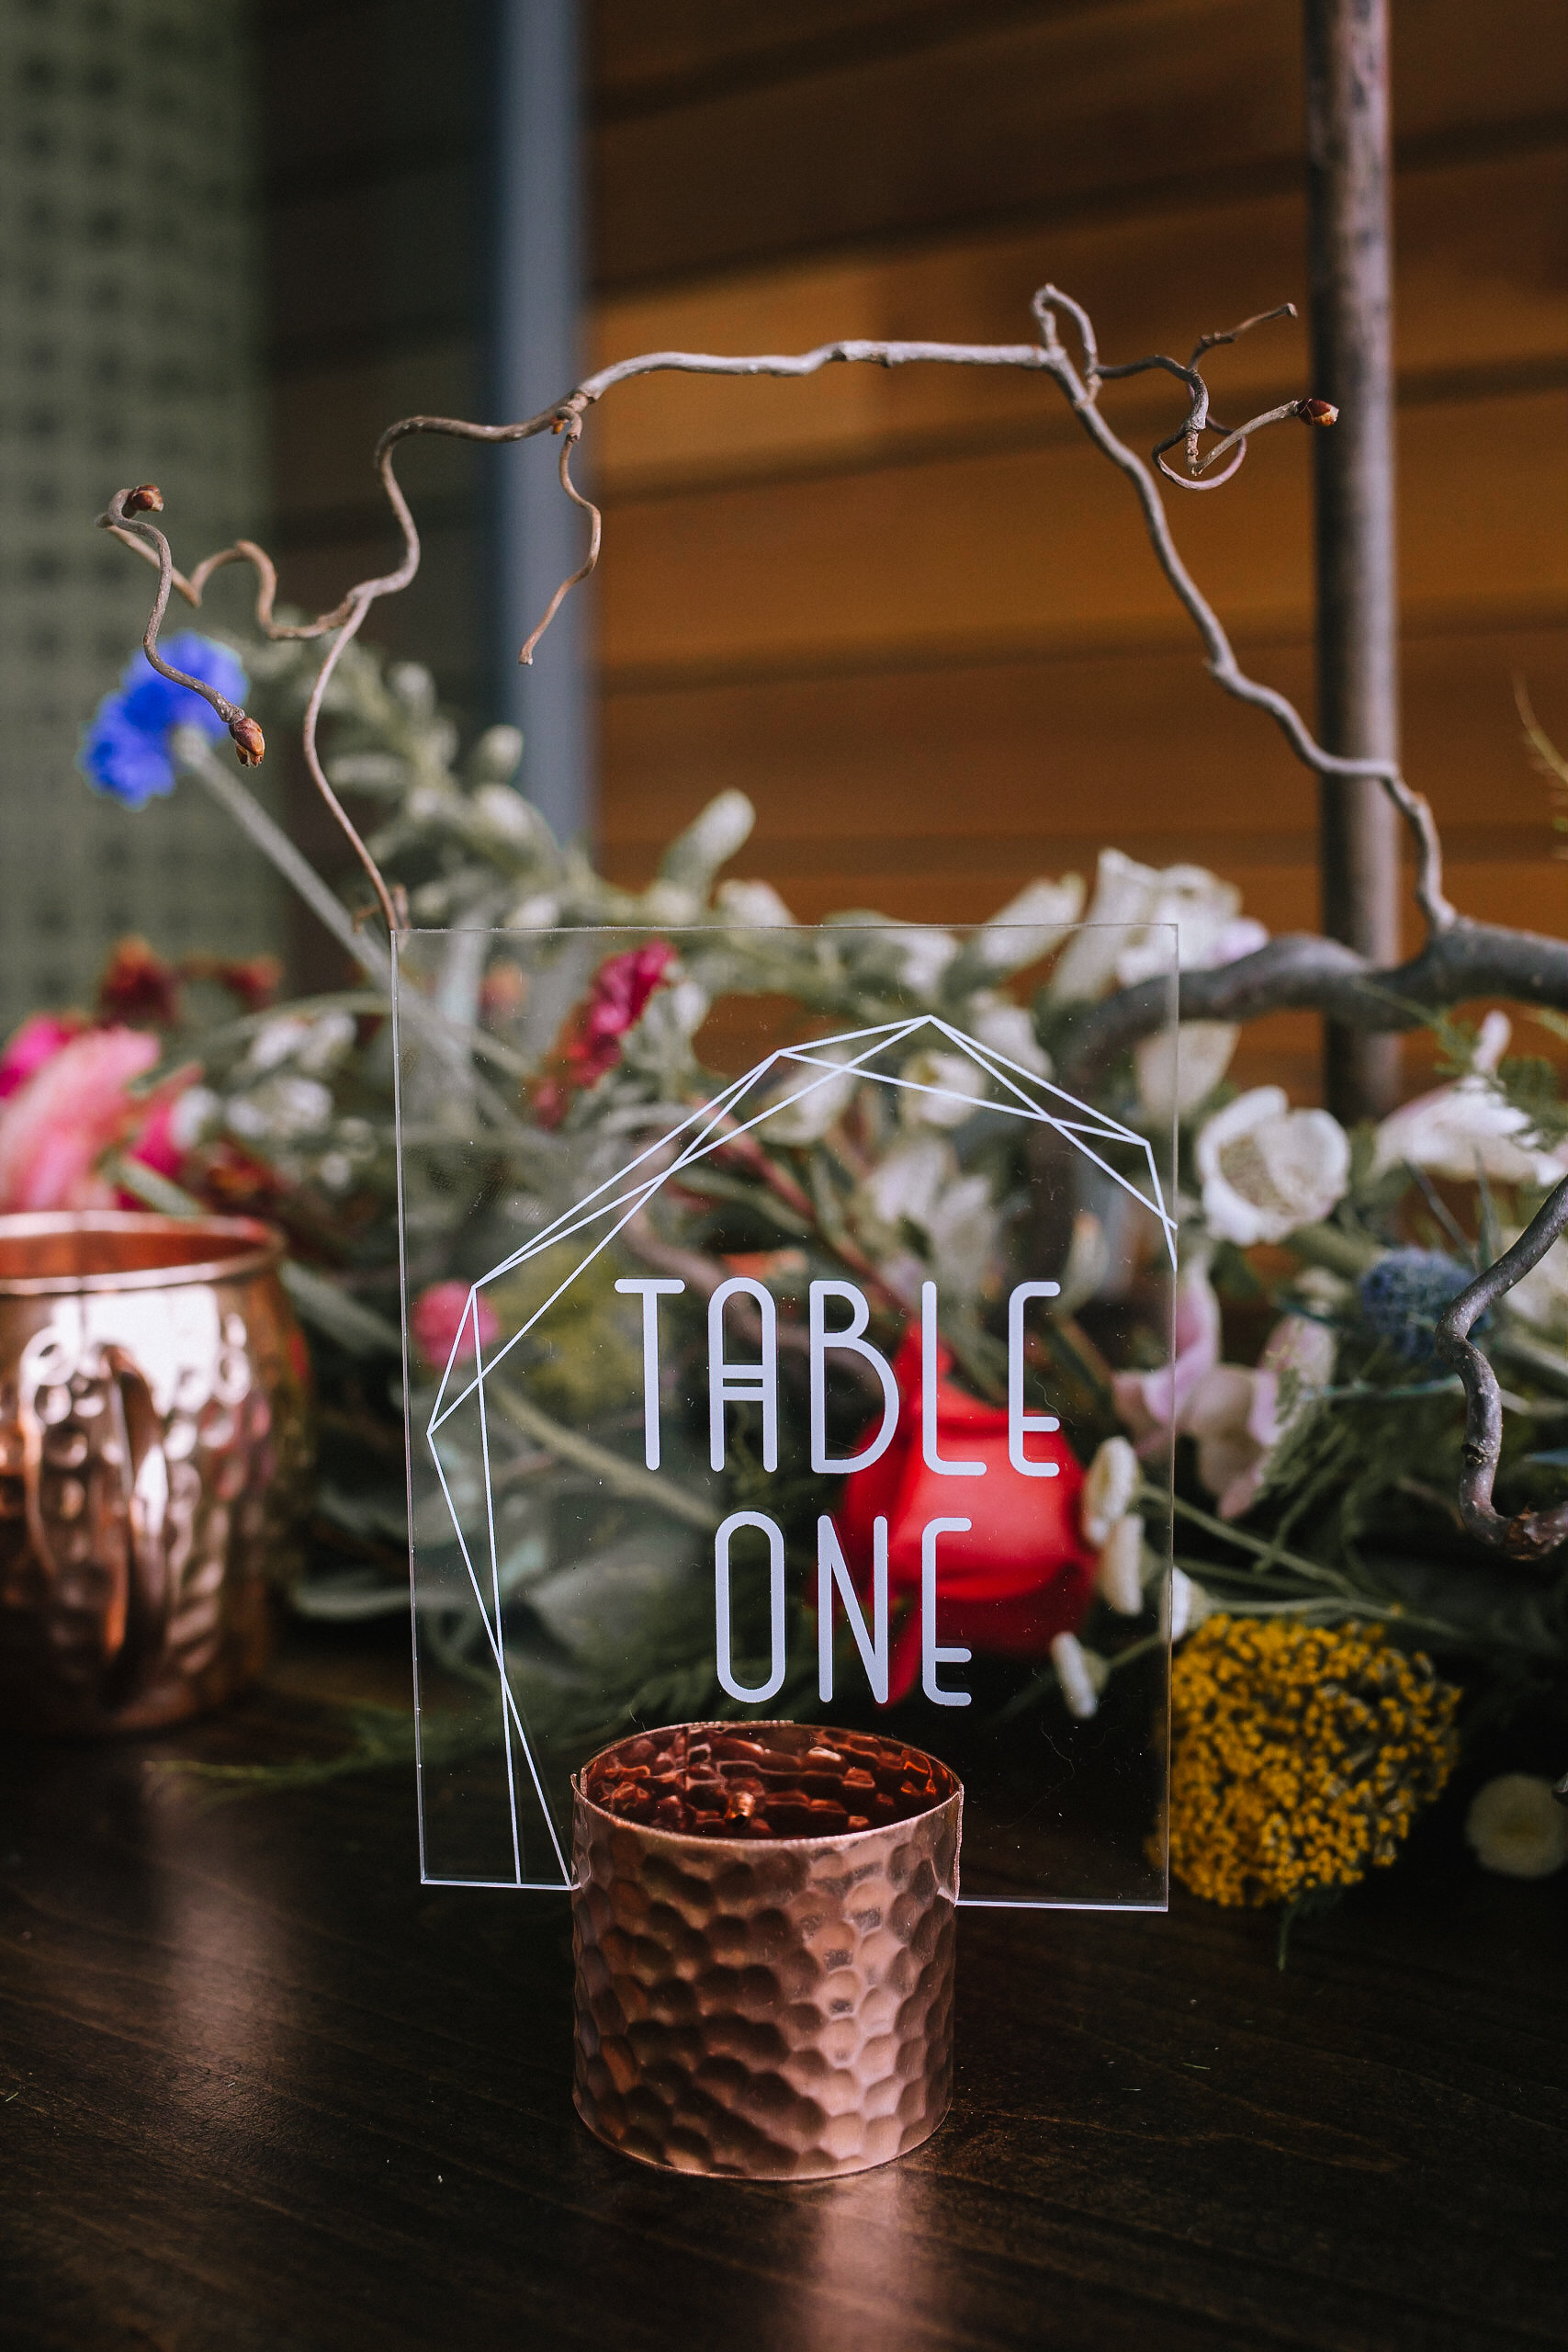 Acrylic wedding table number with copper accents at fall vintage boho styled shoot designed by exhale events. Get inspired by these gorgeous wedding details at exhale-events.com!